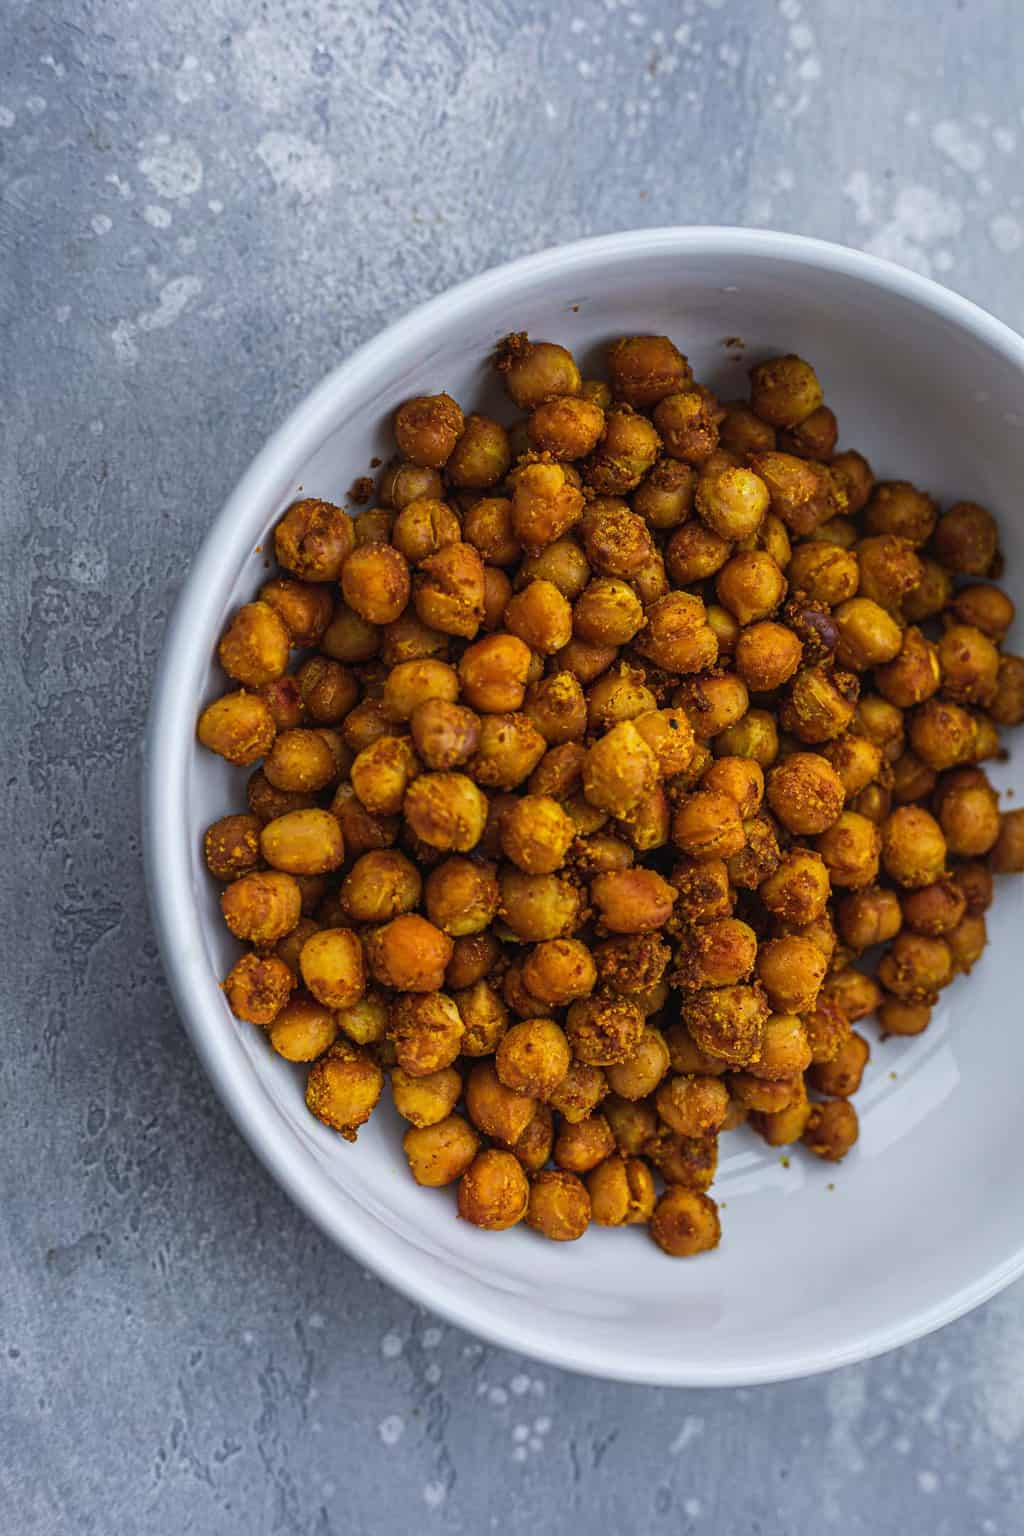 Vegan roasted chickpeas in a white bowl